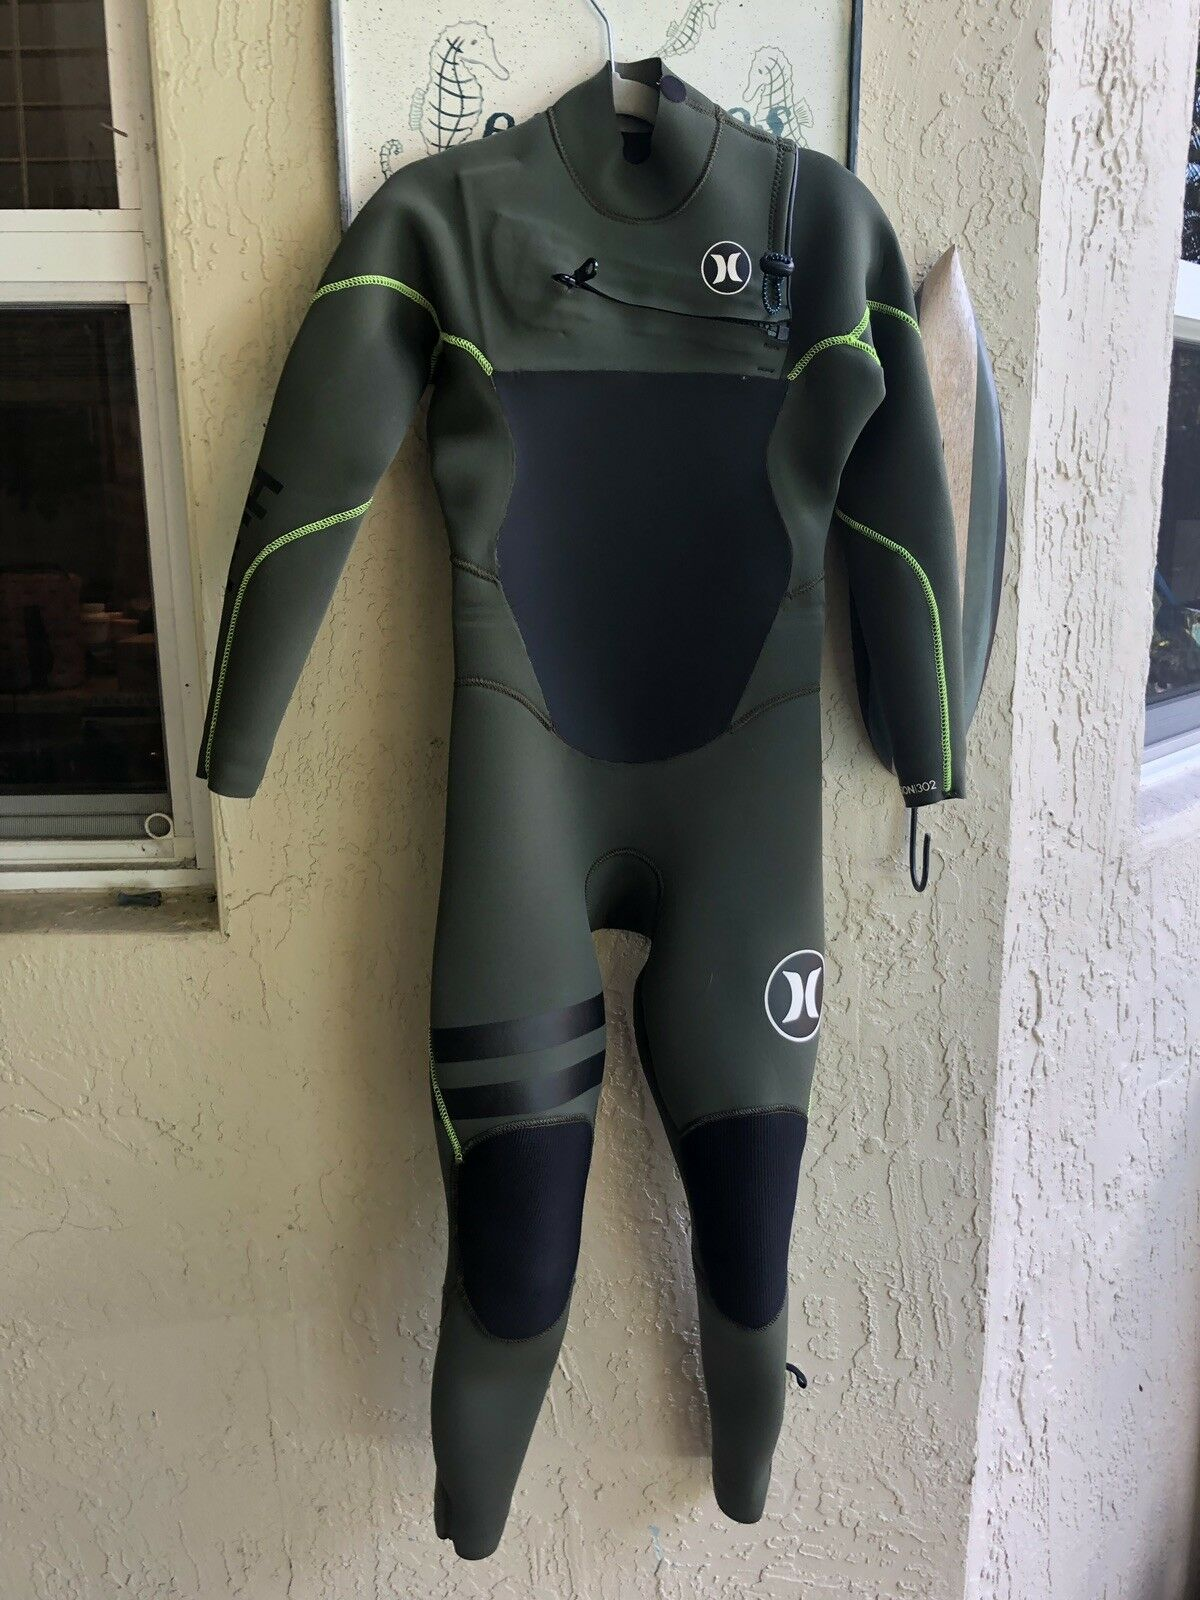 Hurley Fusion 302 Youth (Size 10) 3  2mm Full Suit  here has the latest